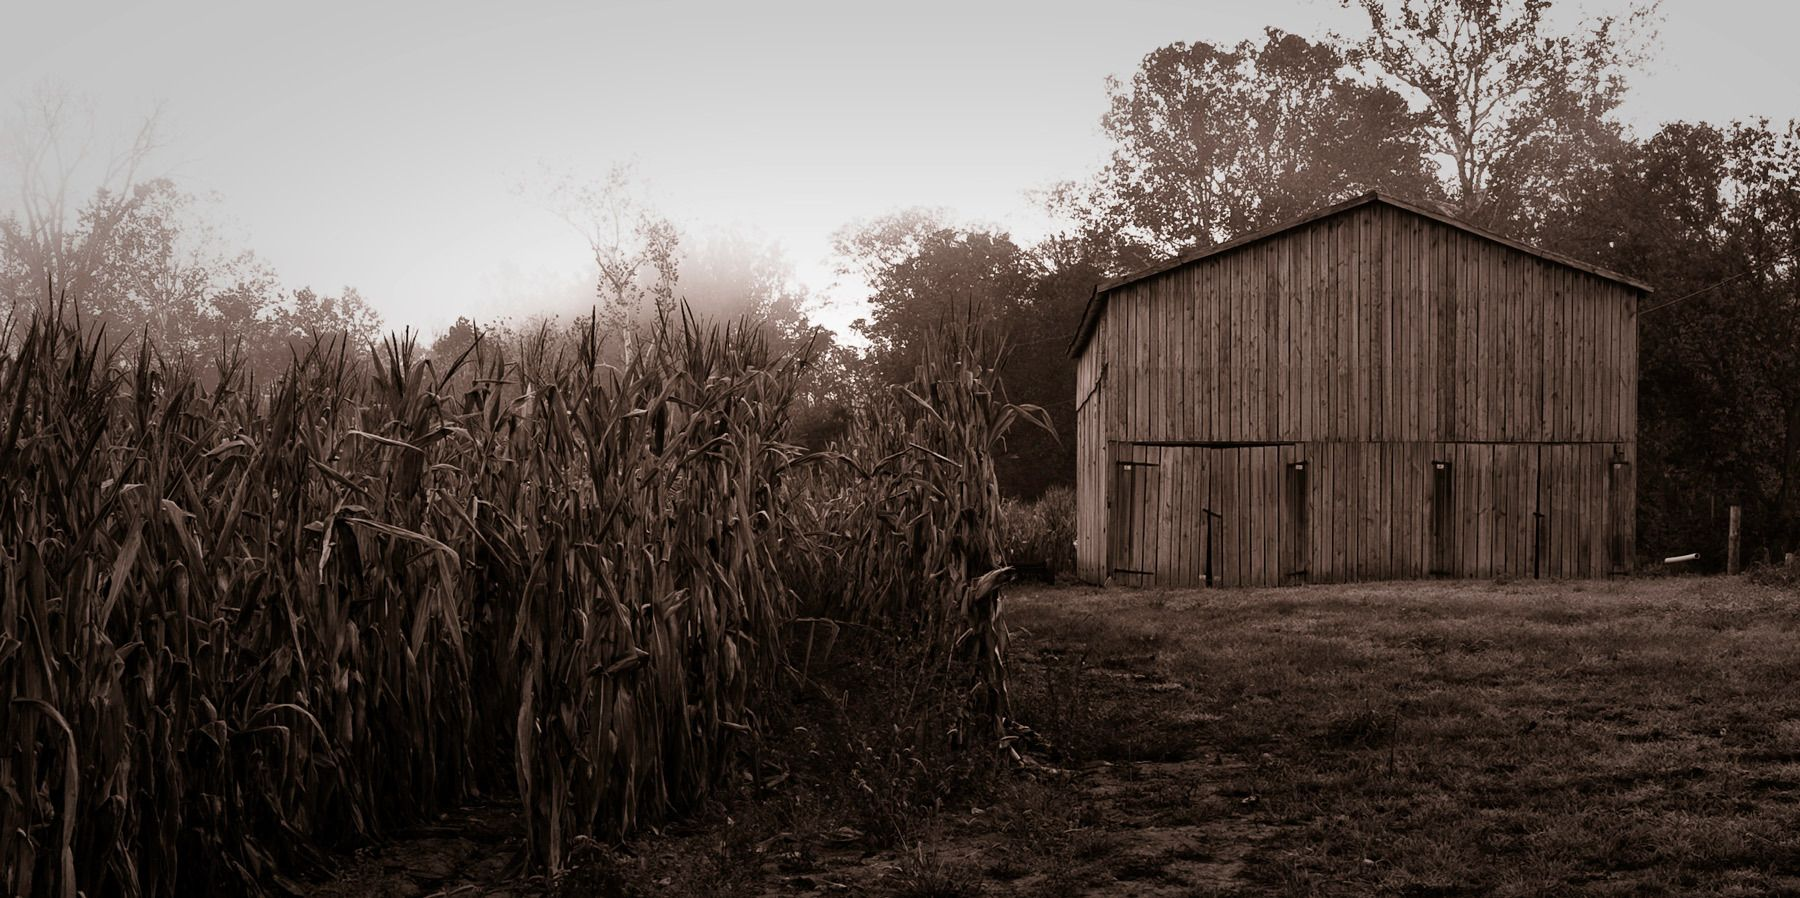 1corn_field_with_barn.jpg